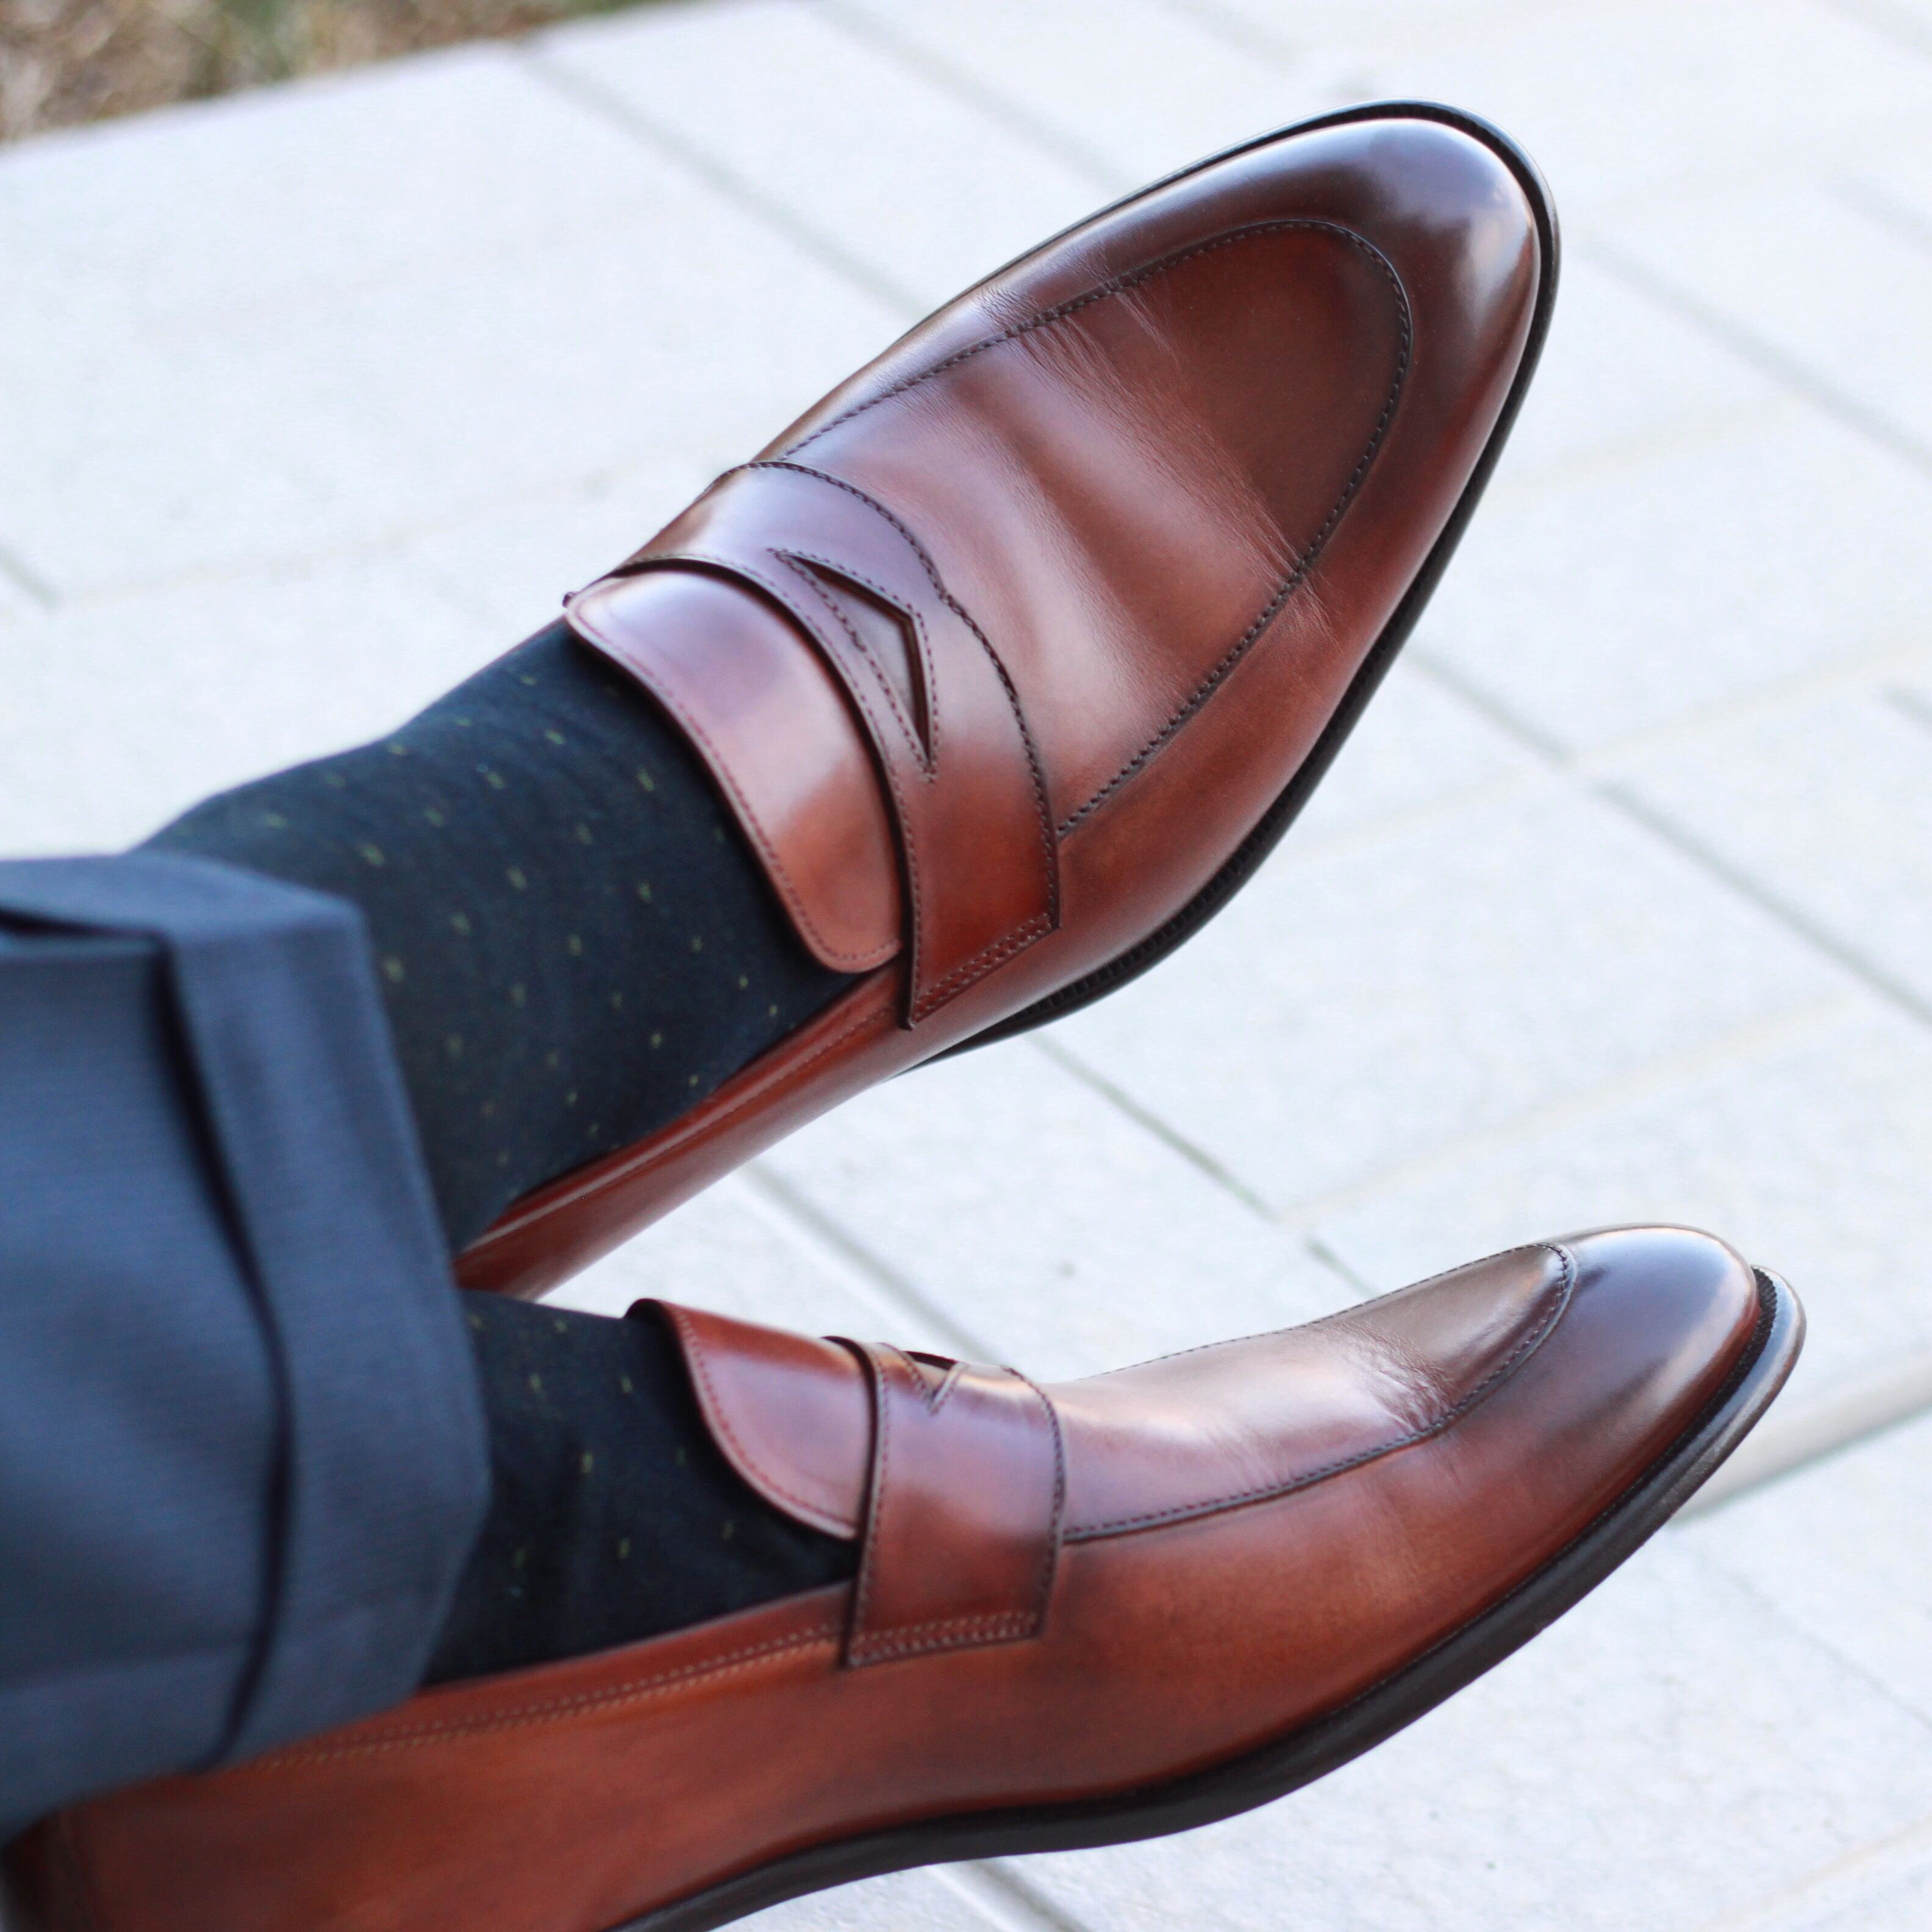 paul evans ny, paul evans ny review, loafer, havana brown, leather loafers